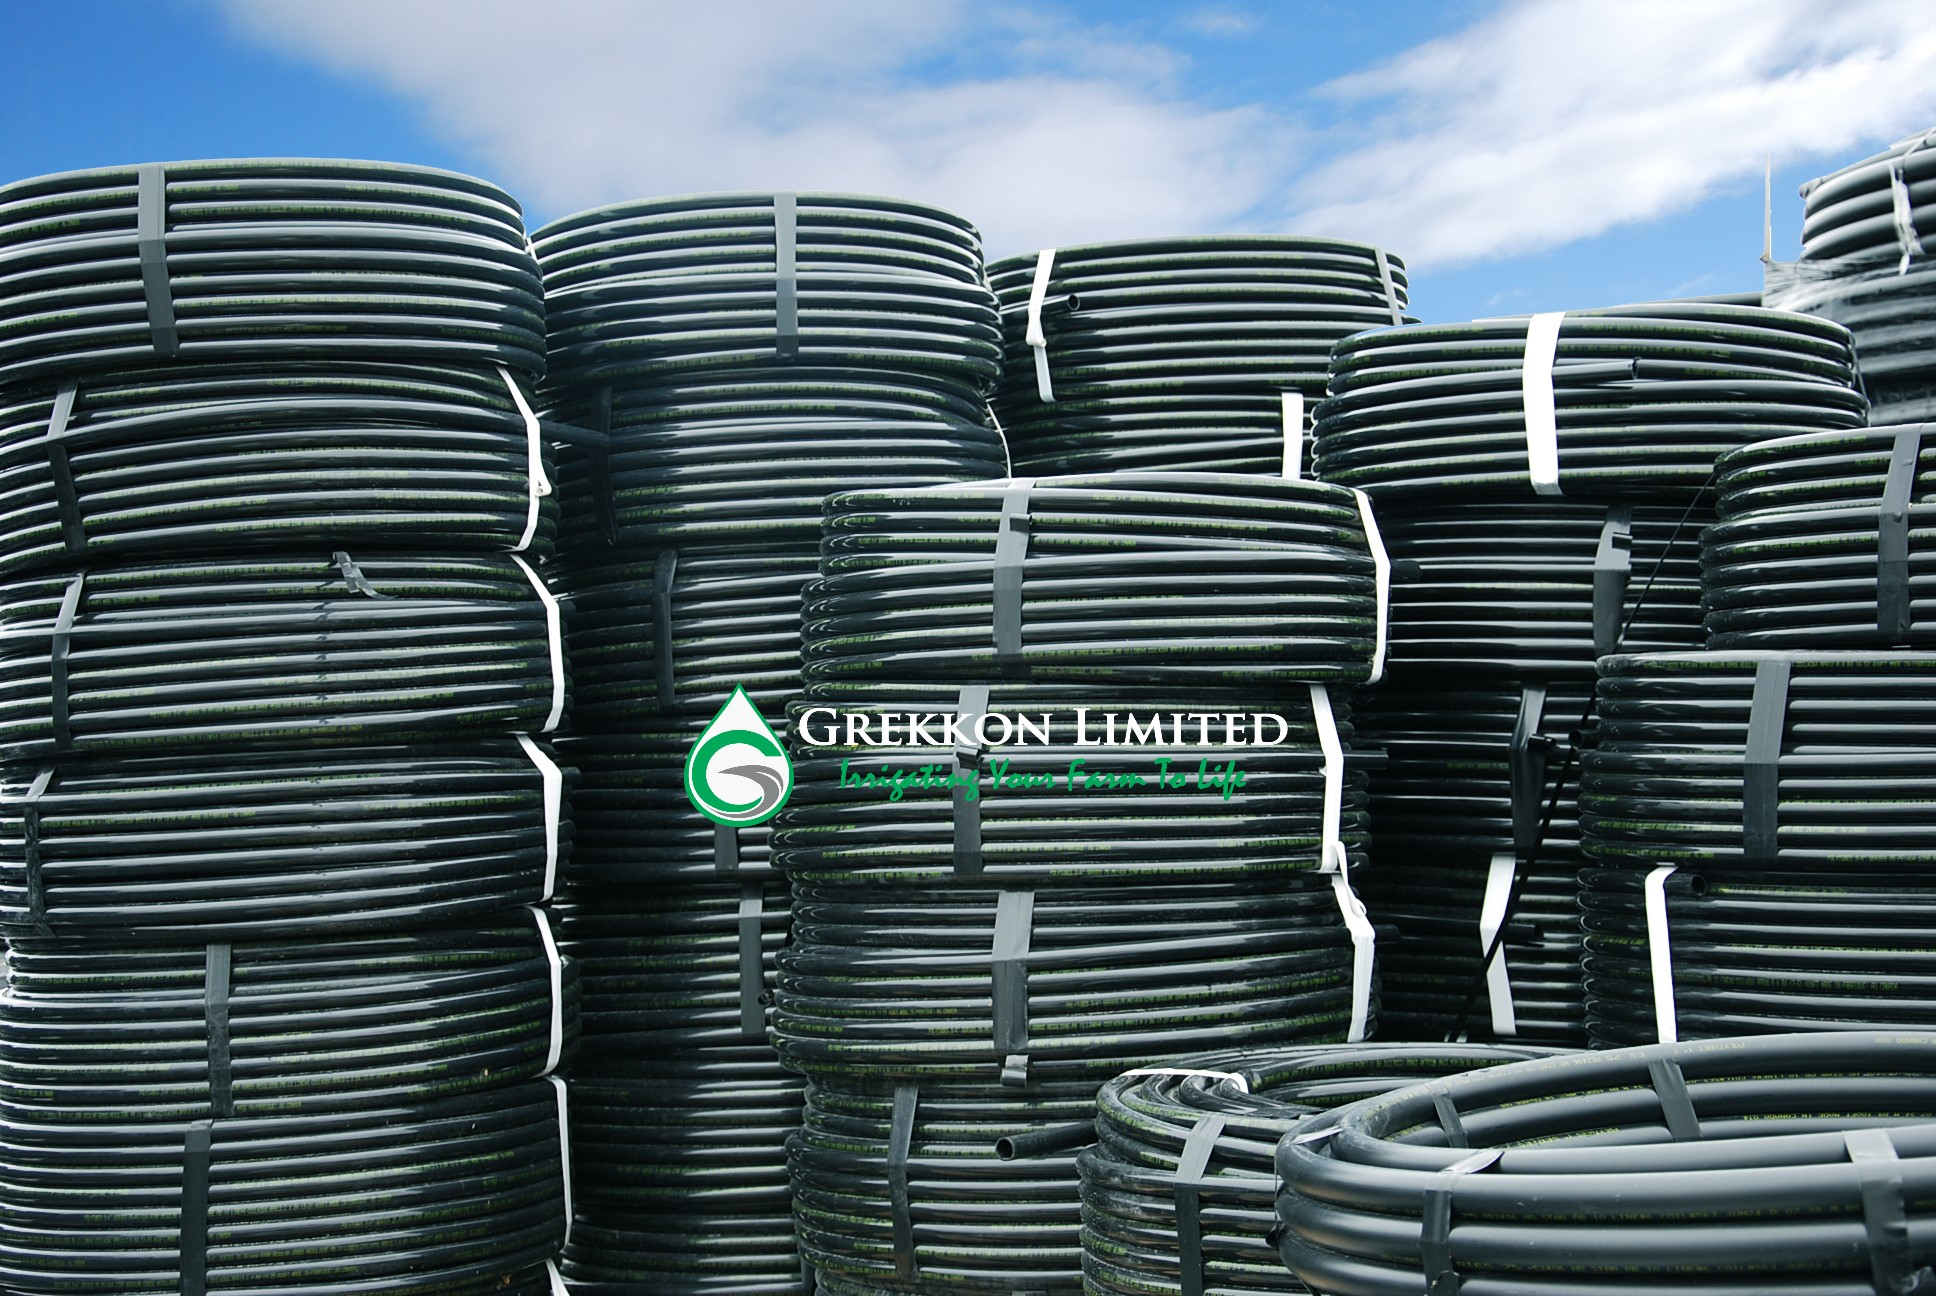 HDPE pipes 20mm by Grekkon Limited